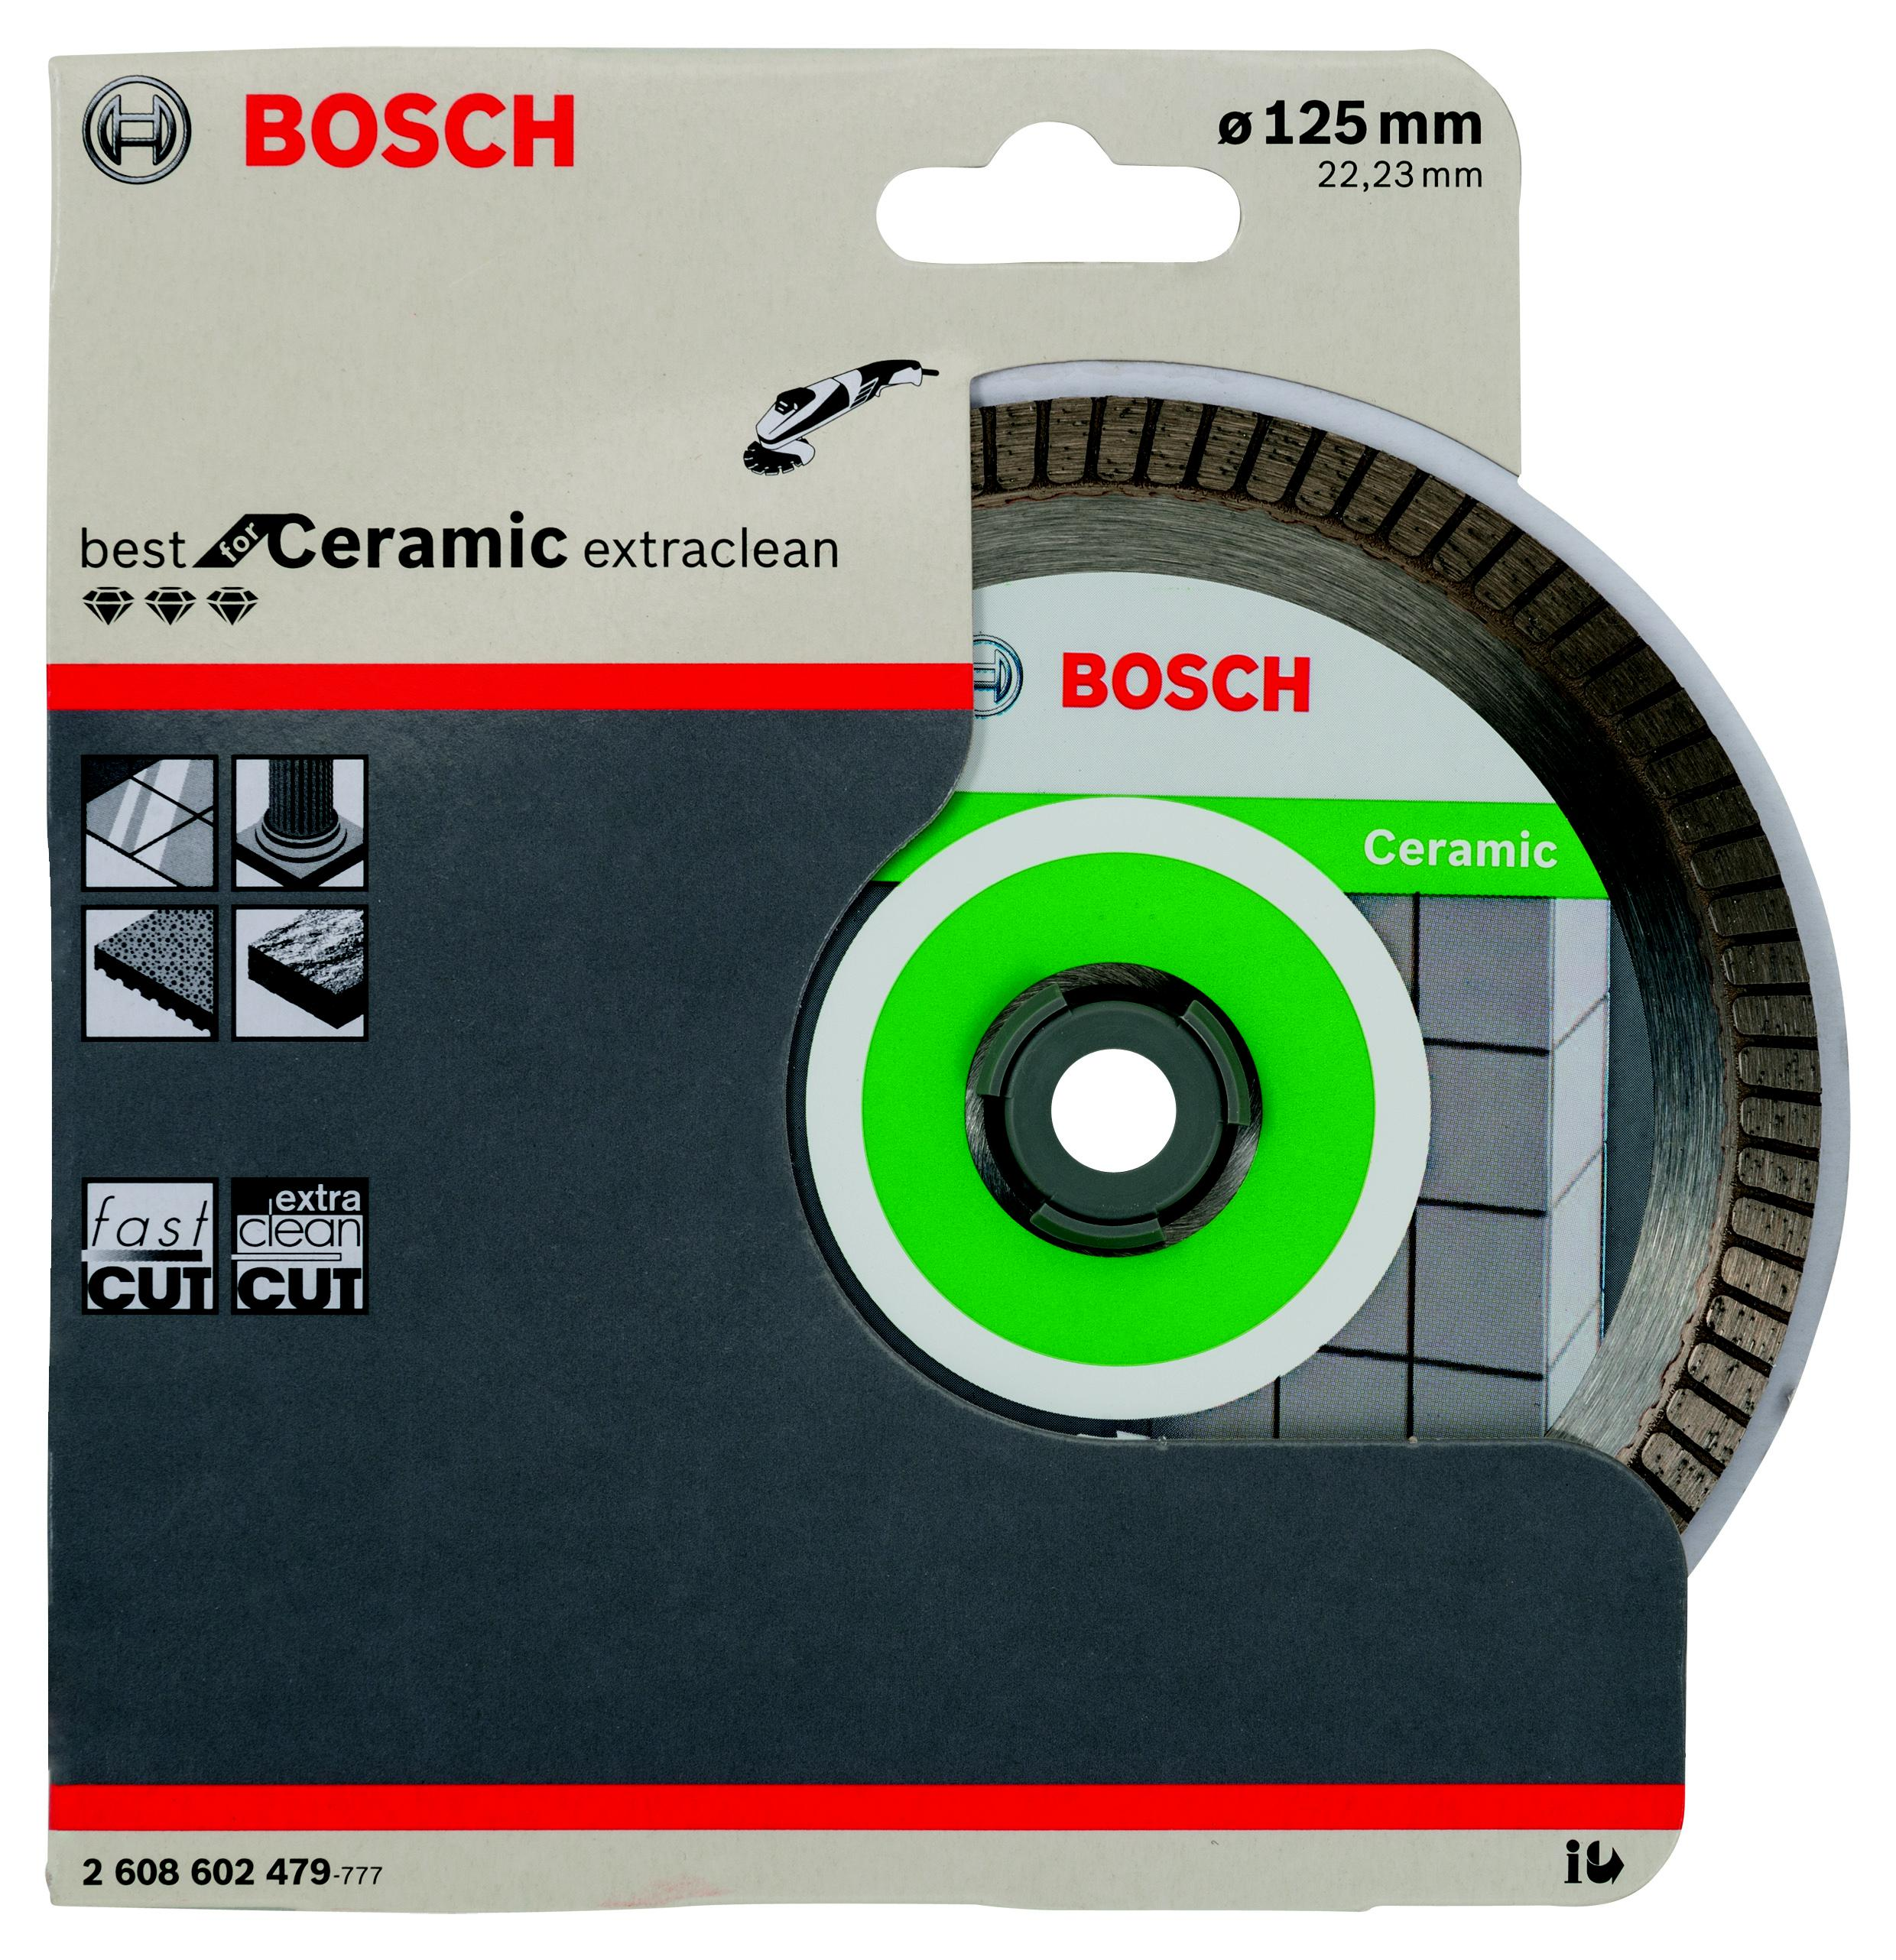 Круг алмазный Bosch Ф125х22мм по керамограниту (best for ceramic extraclean turbo 2.608.602.479)